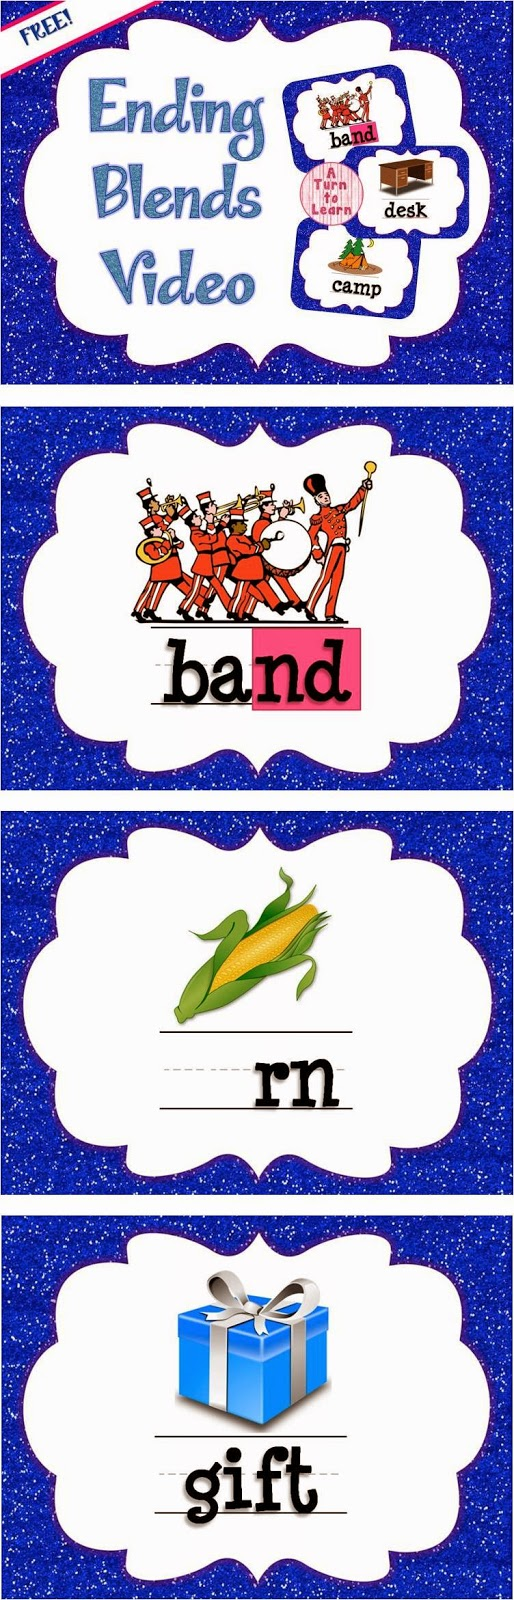 FREE Ending Blends Video: Perfect for introducing or reviewing the concept with your class!